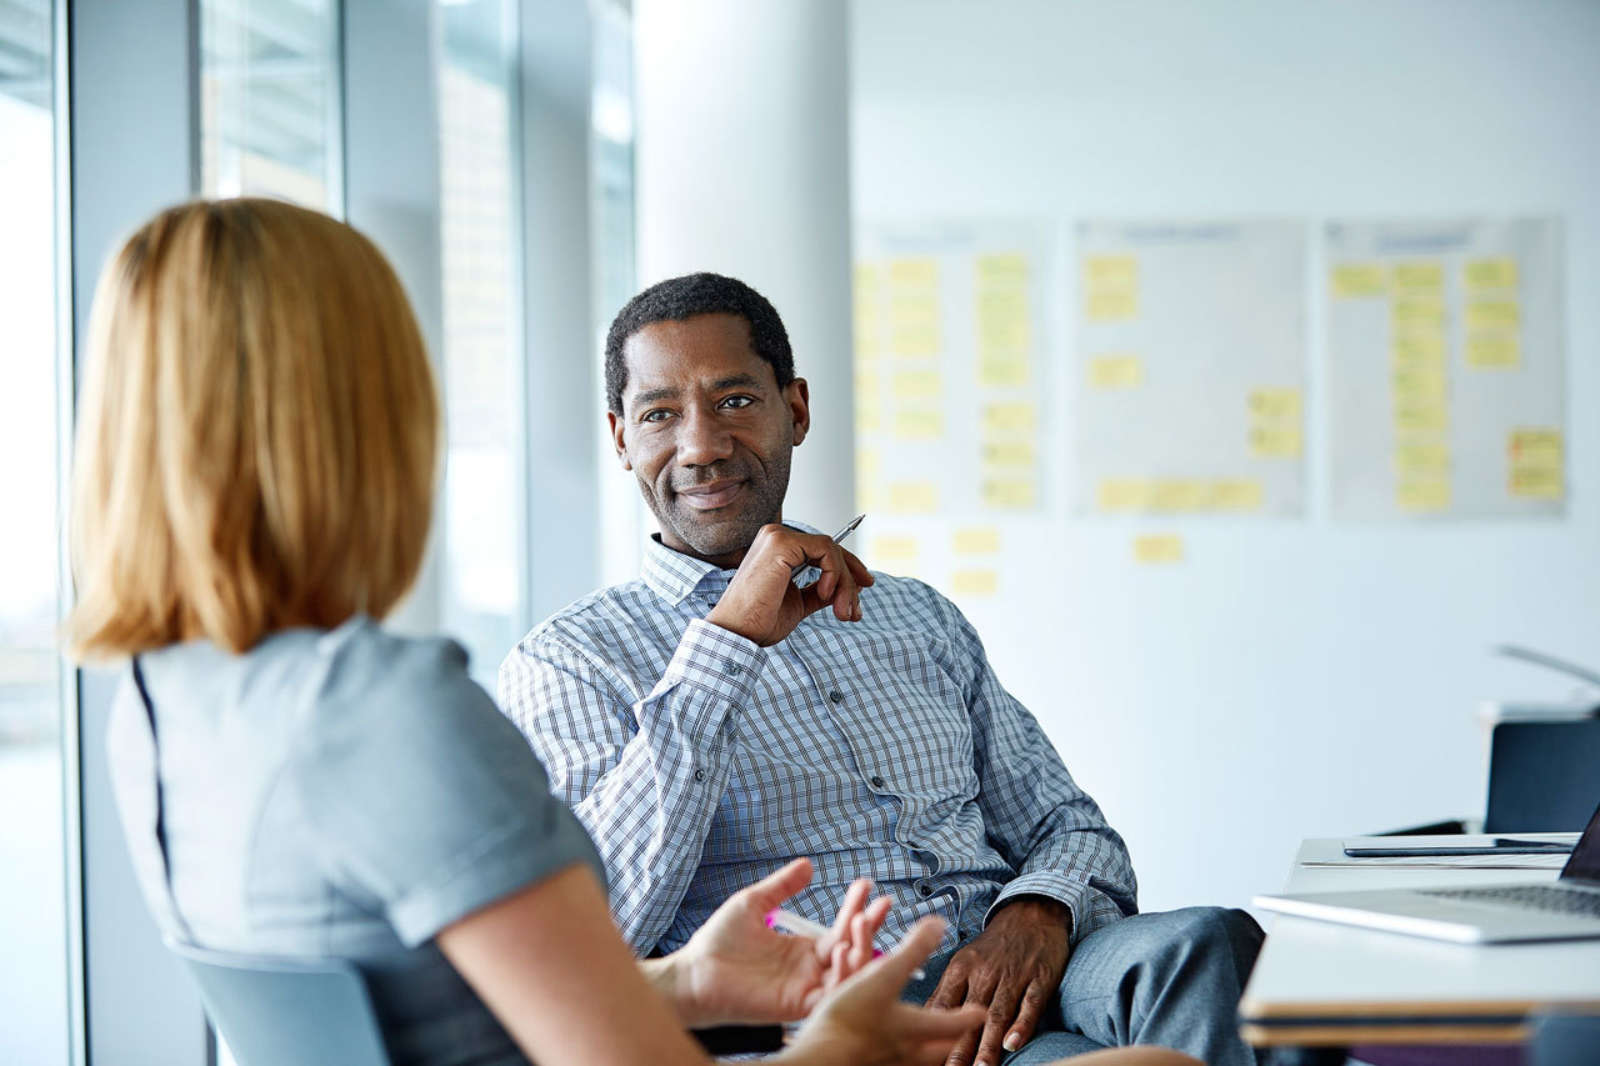 Career coach meets with client in office setting business discussion.jpg